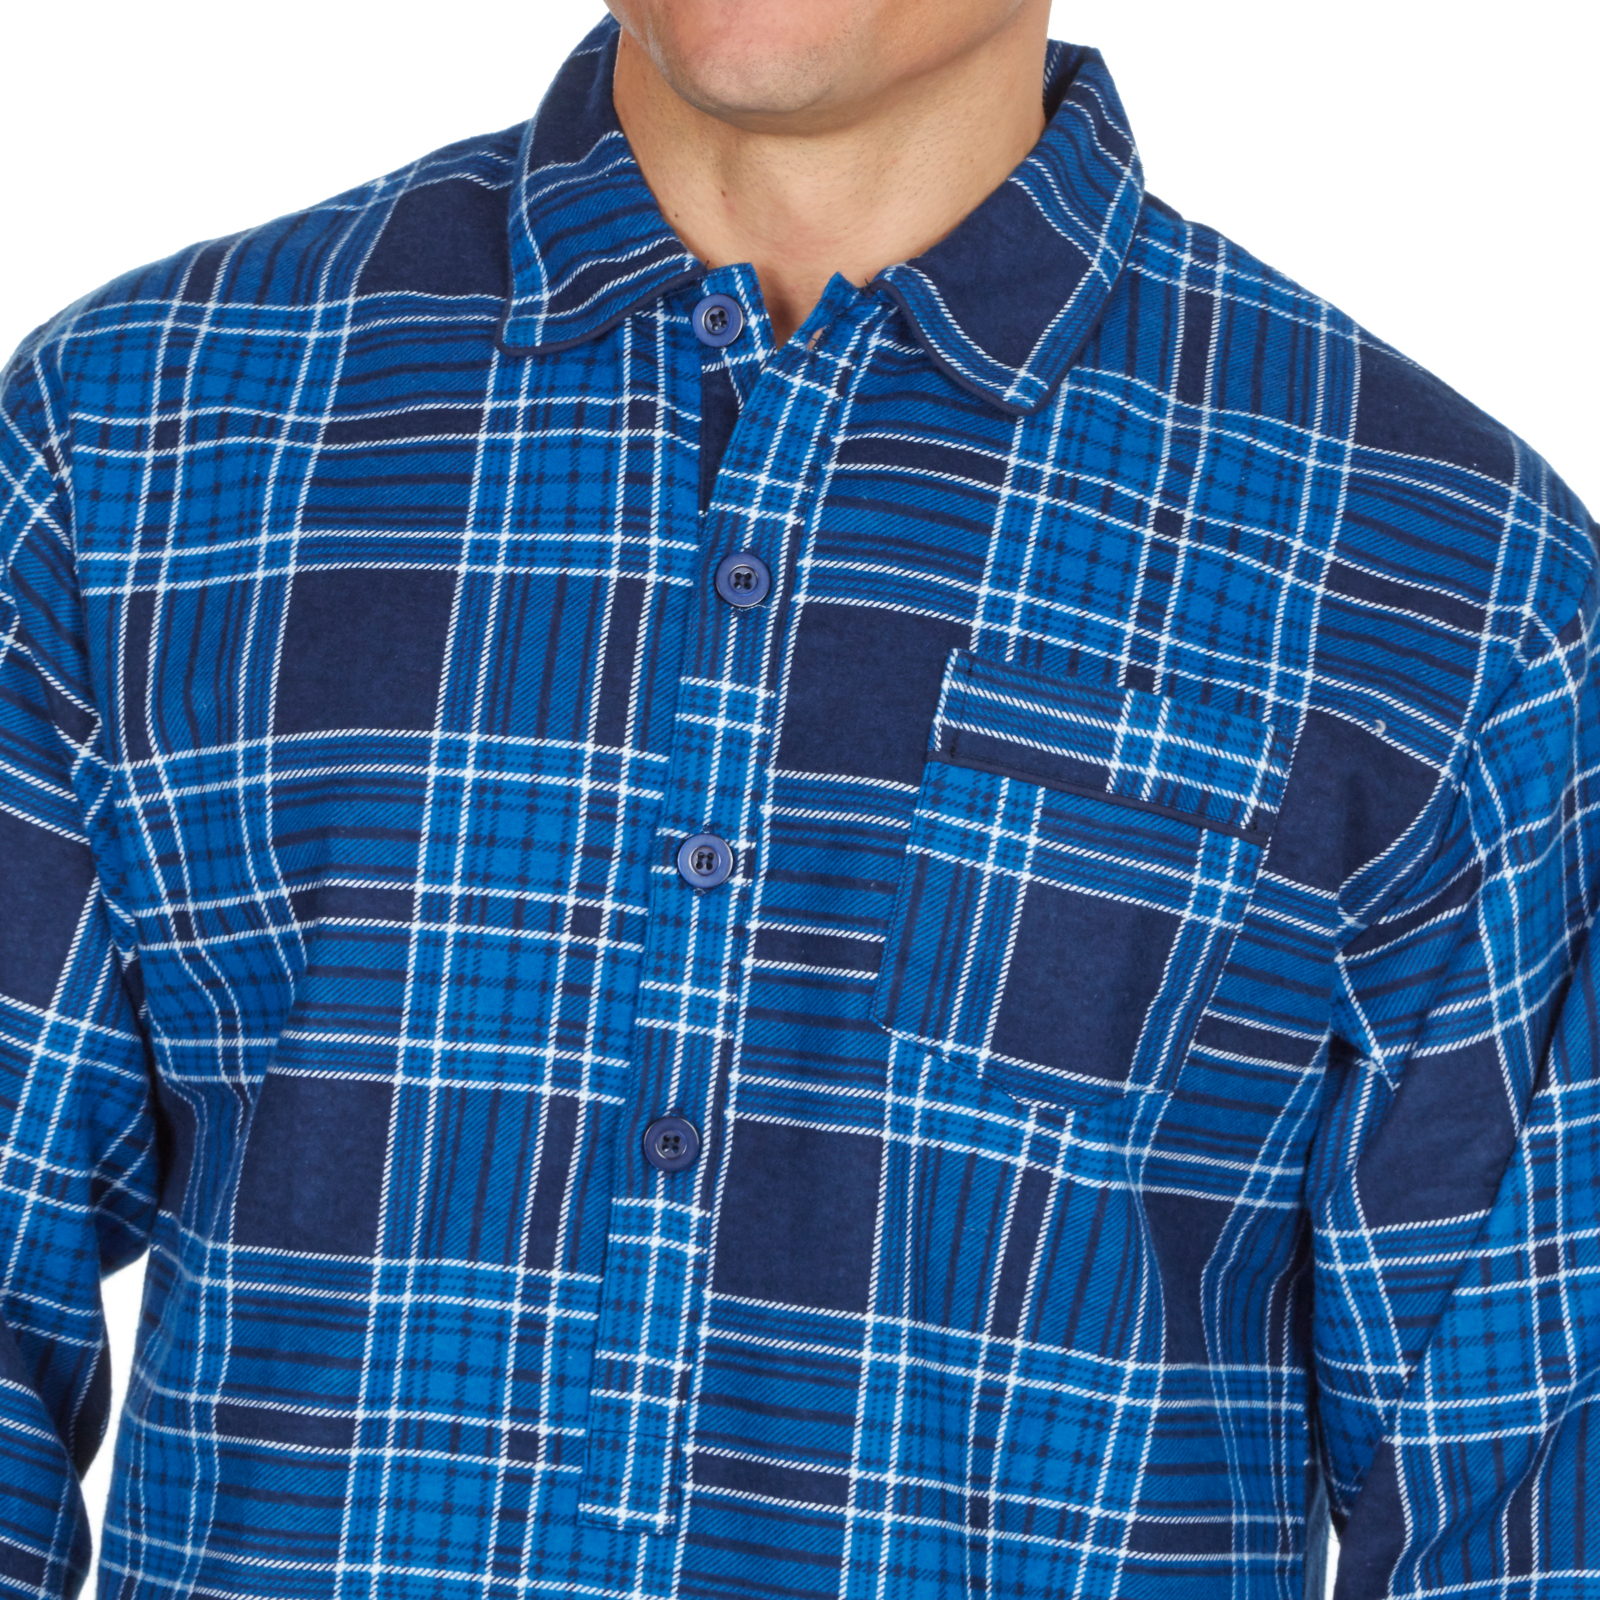 Mens Night Shirt Traditional Striped Nightshirt Brushed Cotton Flannel Warm